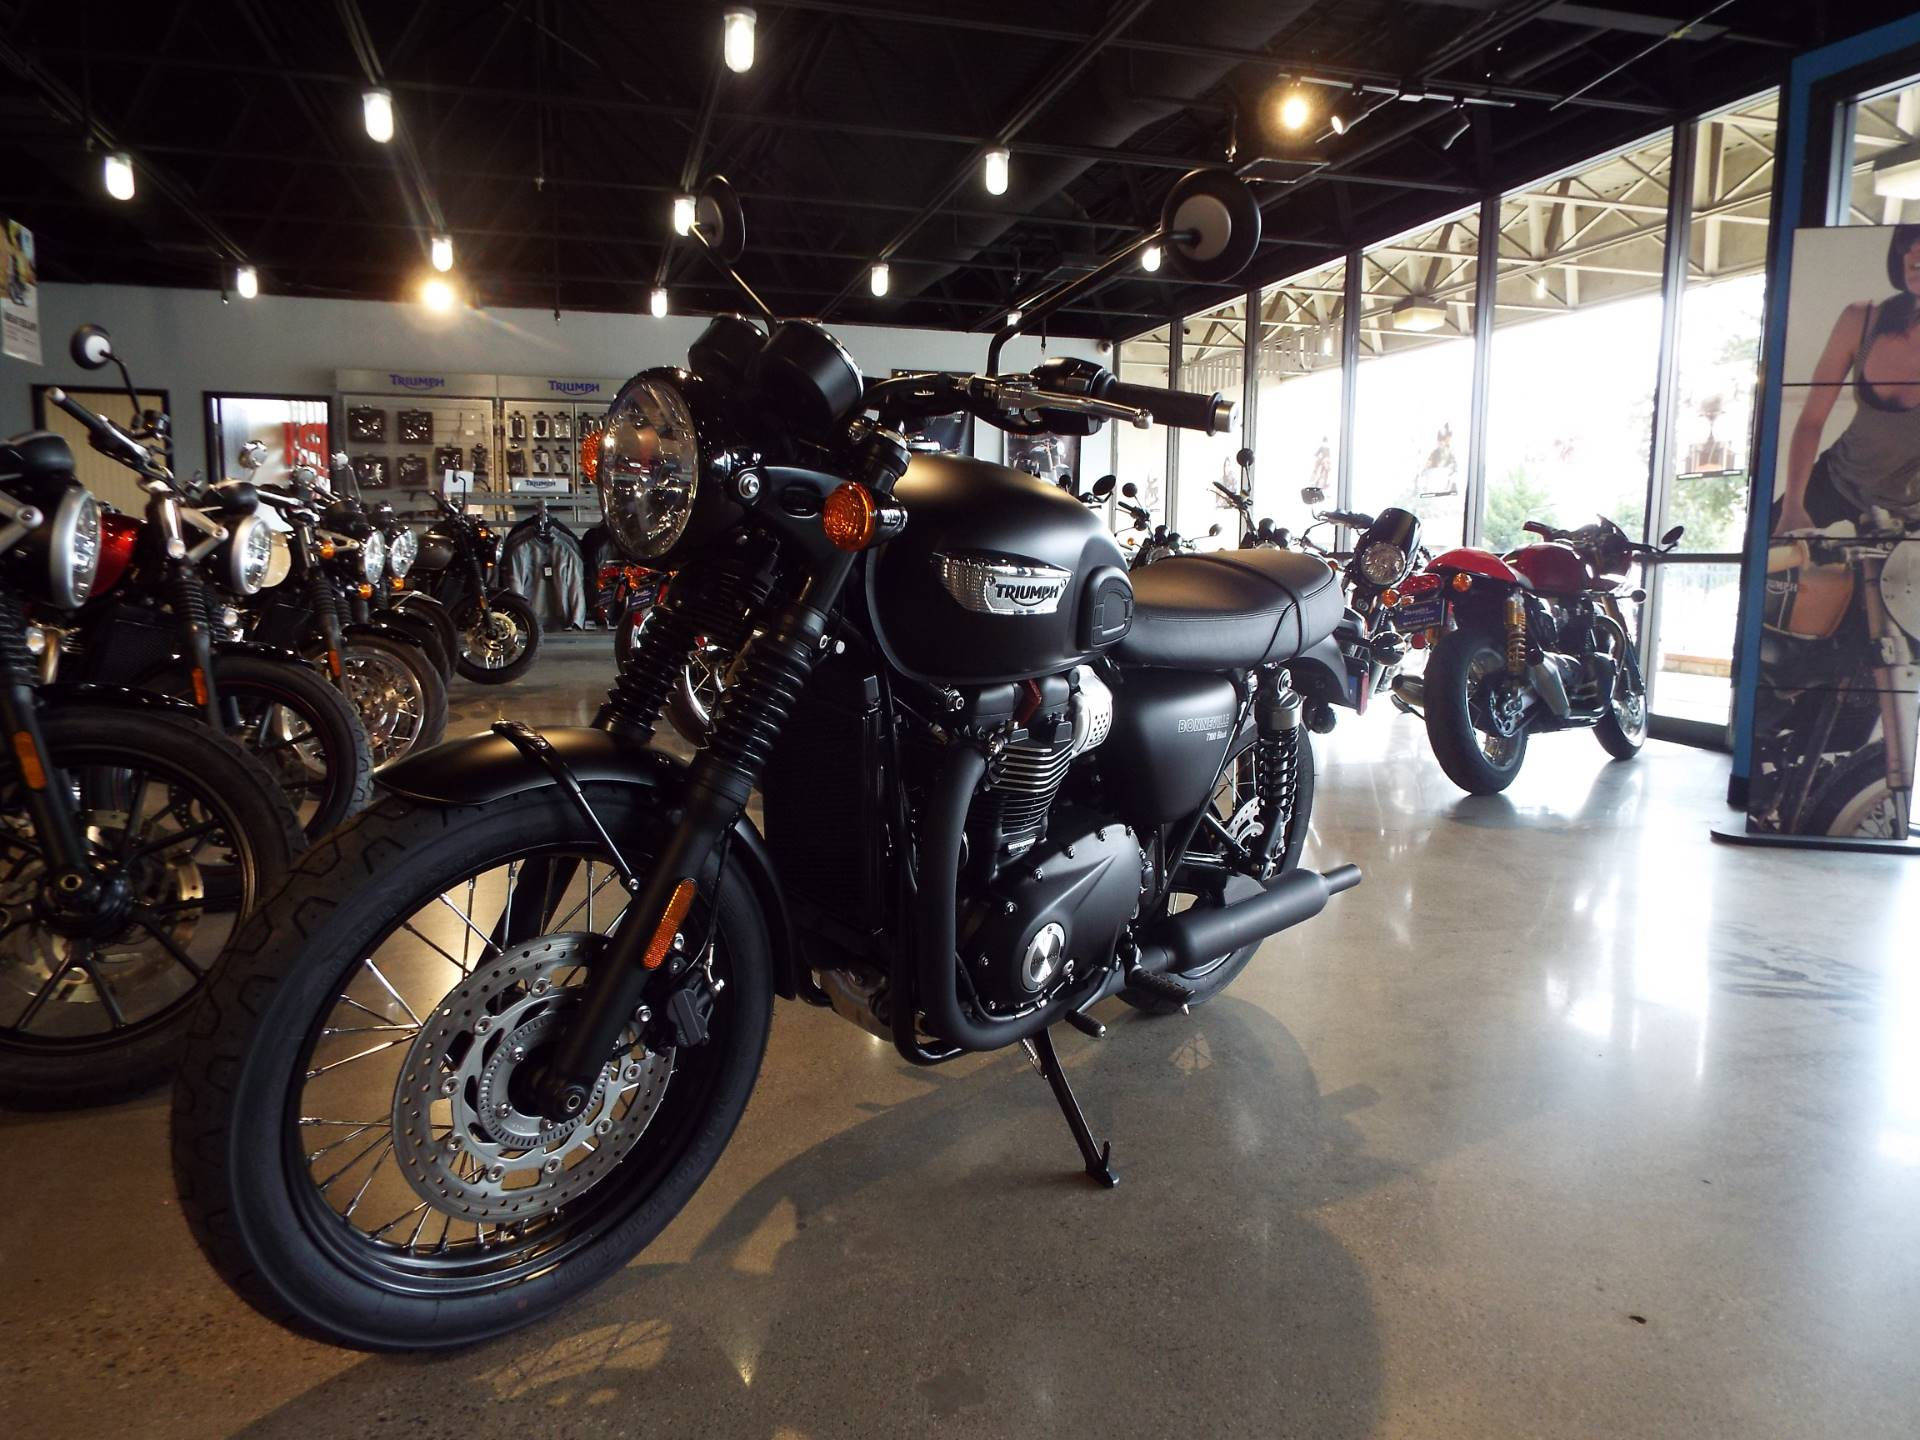 2017 Triumph Bonneville T100 Black in San Bernardino, California